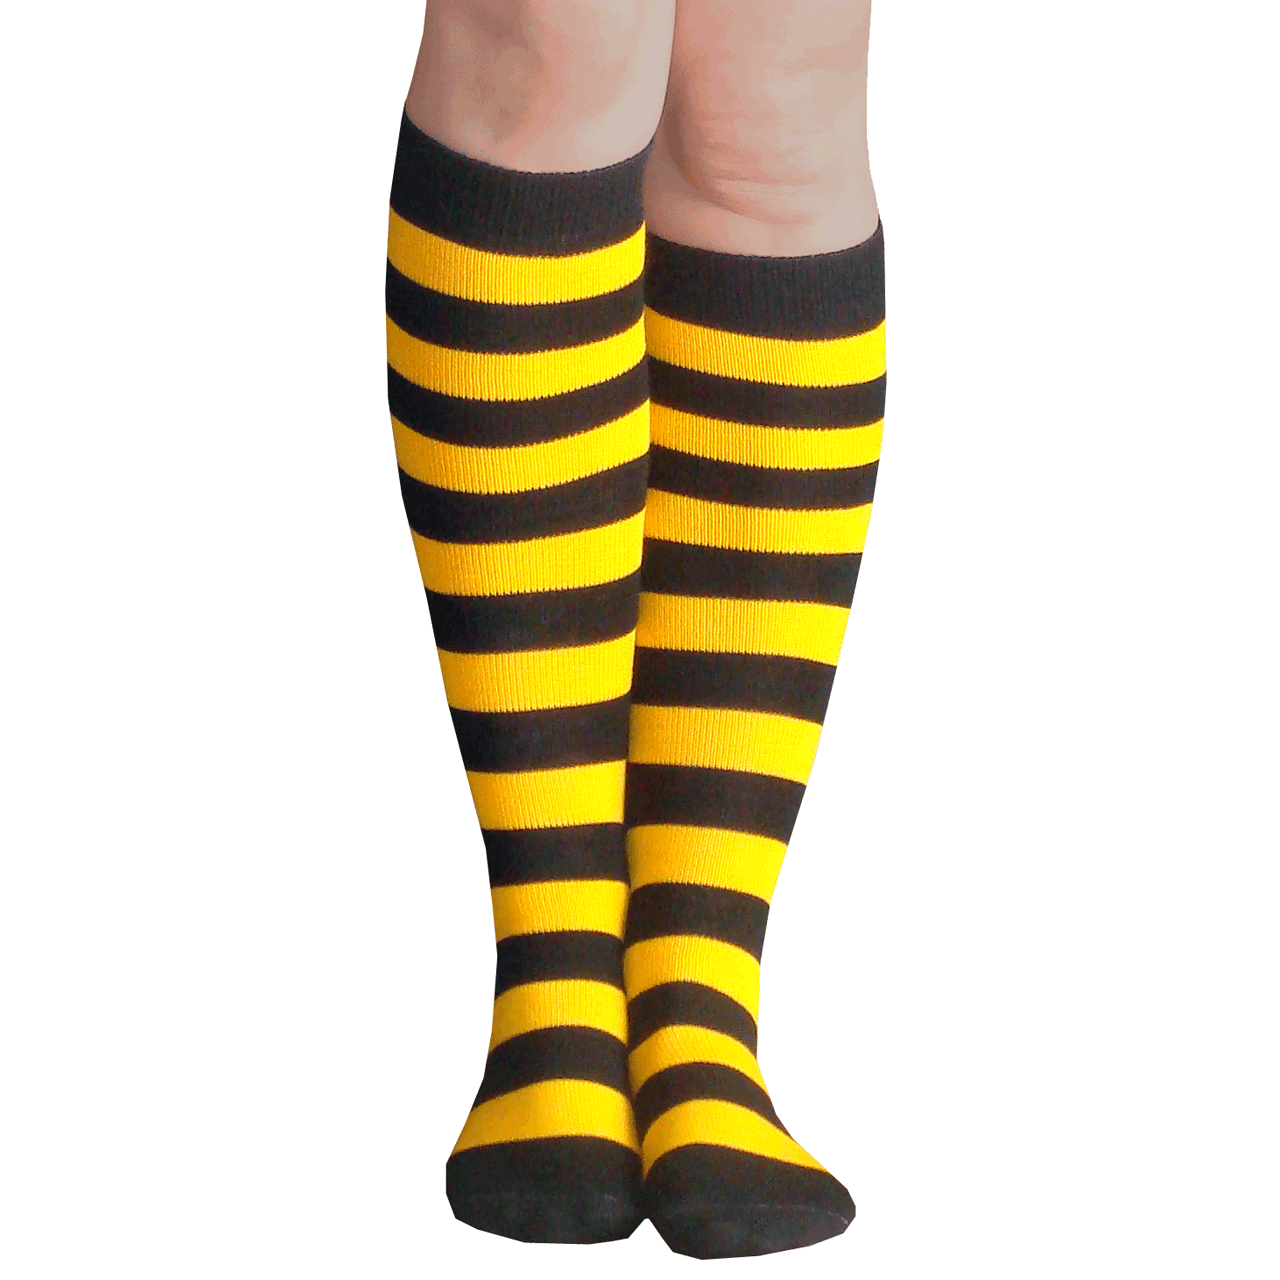 Free shipping BOTH ways on knee high socks, from our vast selection of styles. Fast delivery, and 24/7/ real-person service with a smile. Click or call